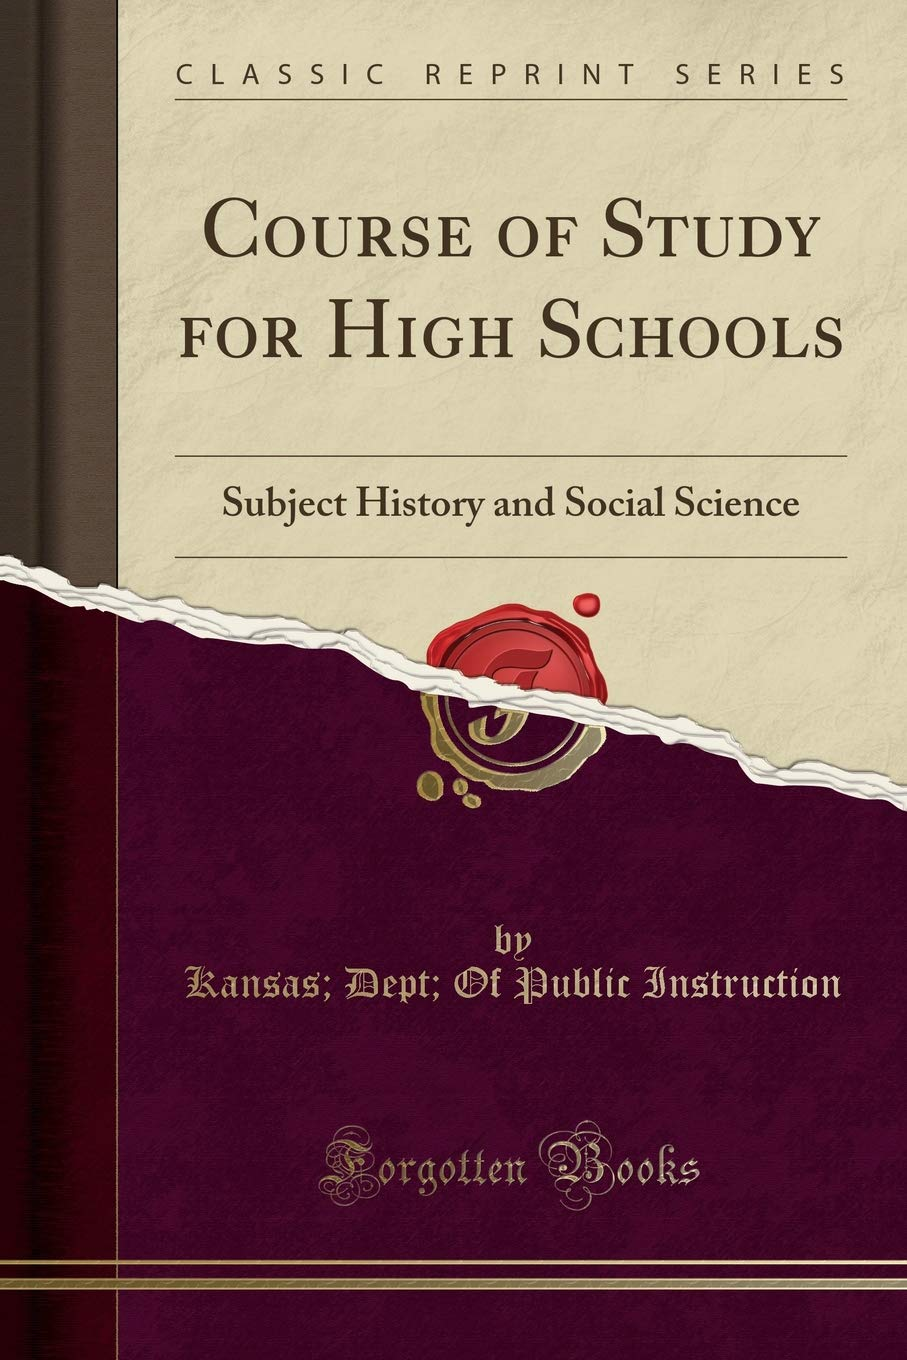 Course Of Study For High Schools Subject History And Social Science Classic Reprint Amazon Co Uk Instruction Kansas Dept Of Public 9781331117032 Books